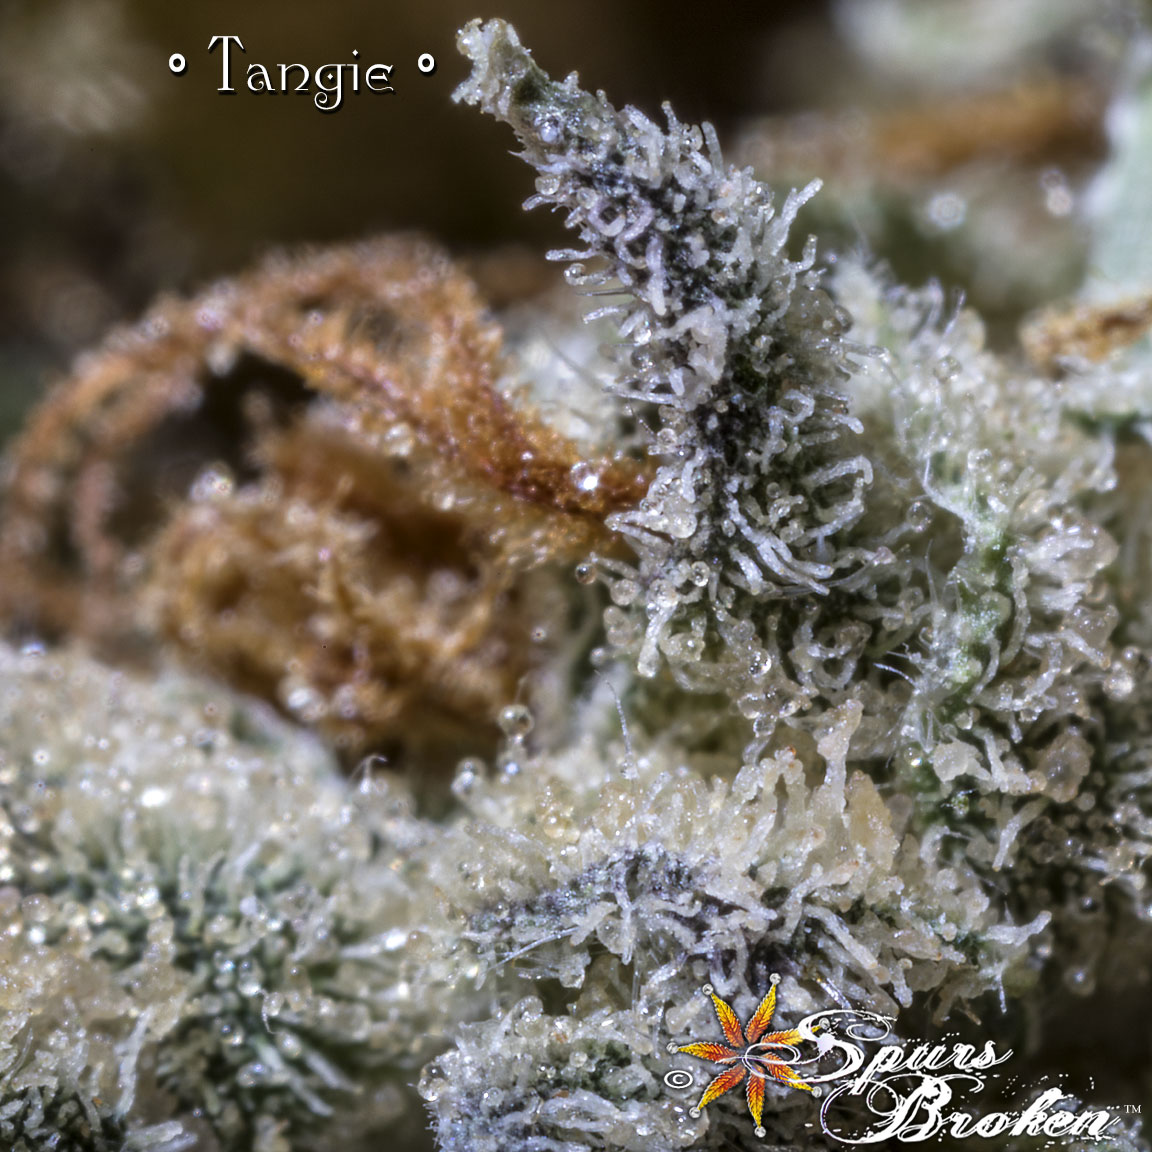 Tangie - Cannabis Macro Photography by Spurs Broken (Robert R. Sanders